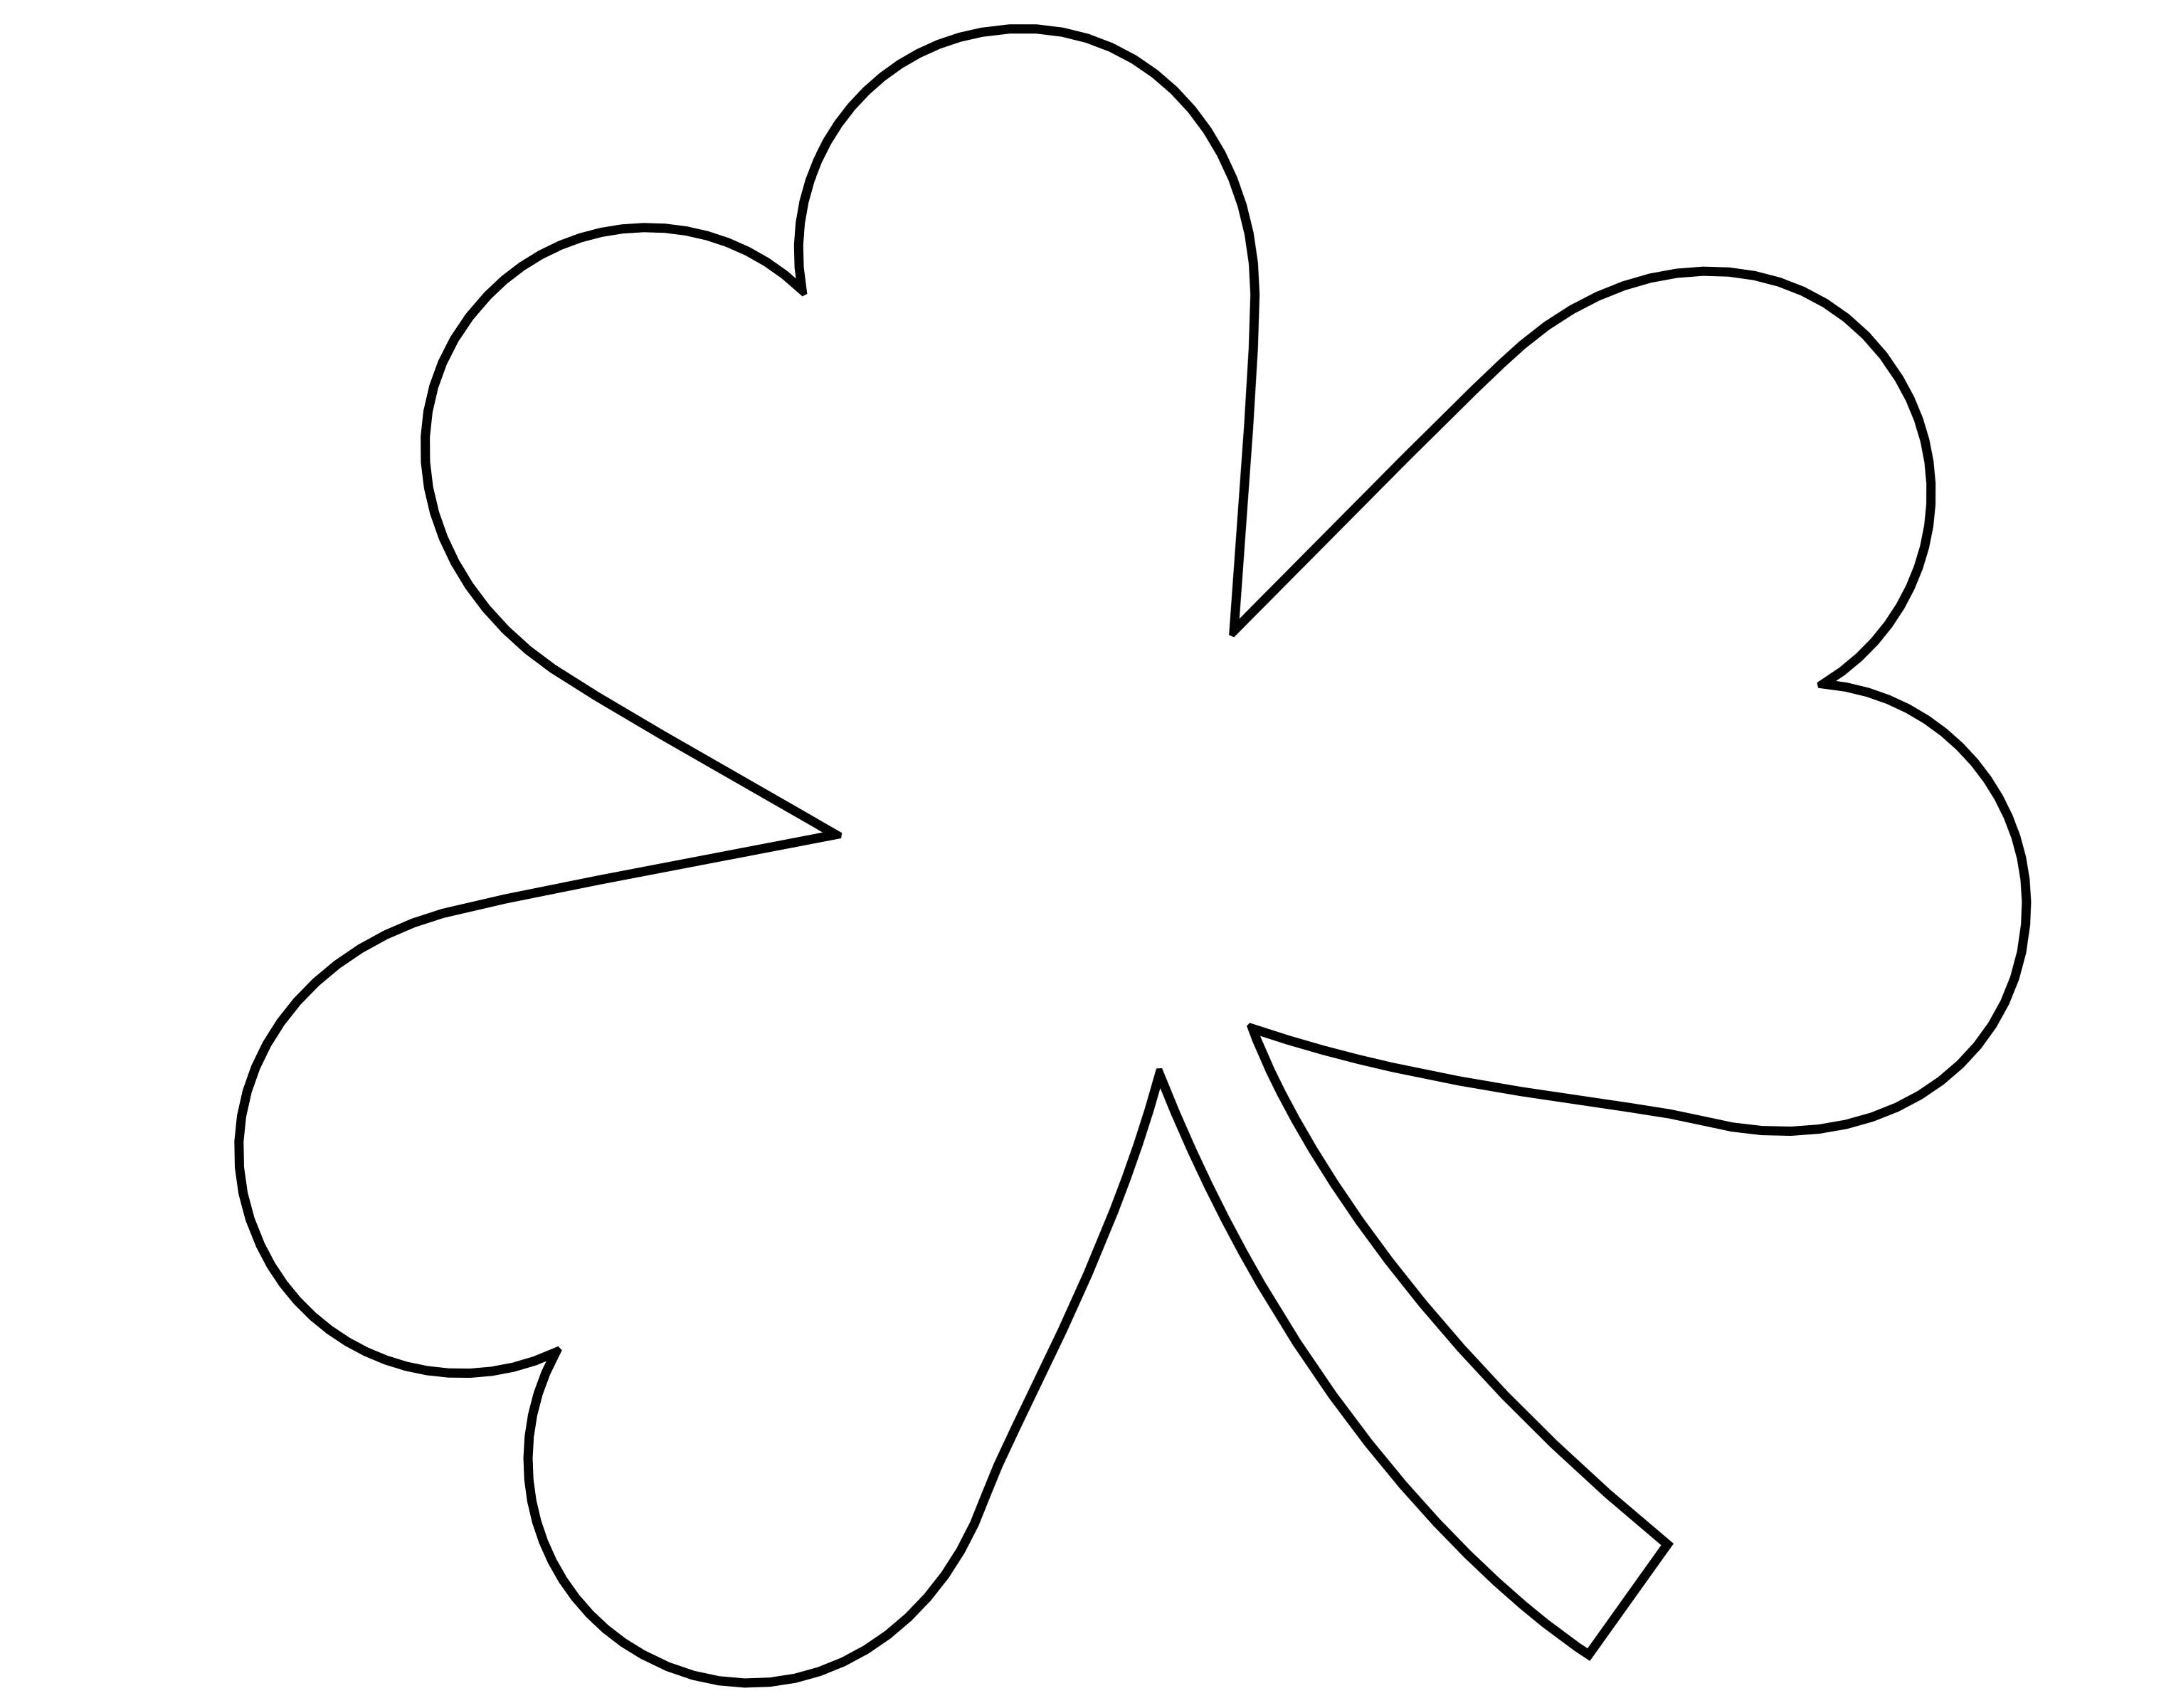 Shamrock Template Free Printable 301 Moved Permanently